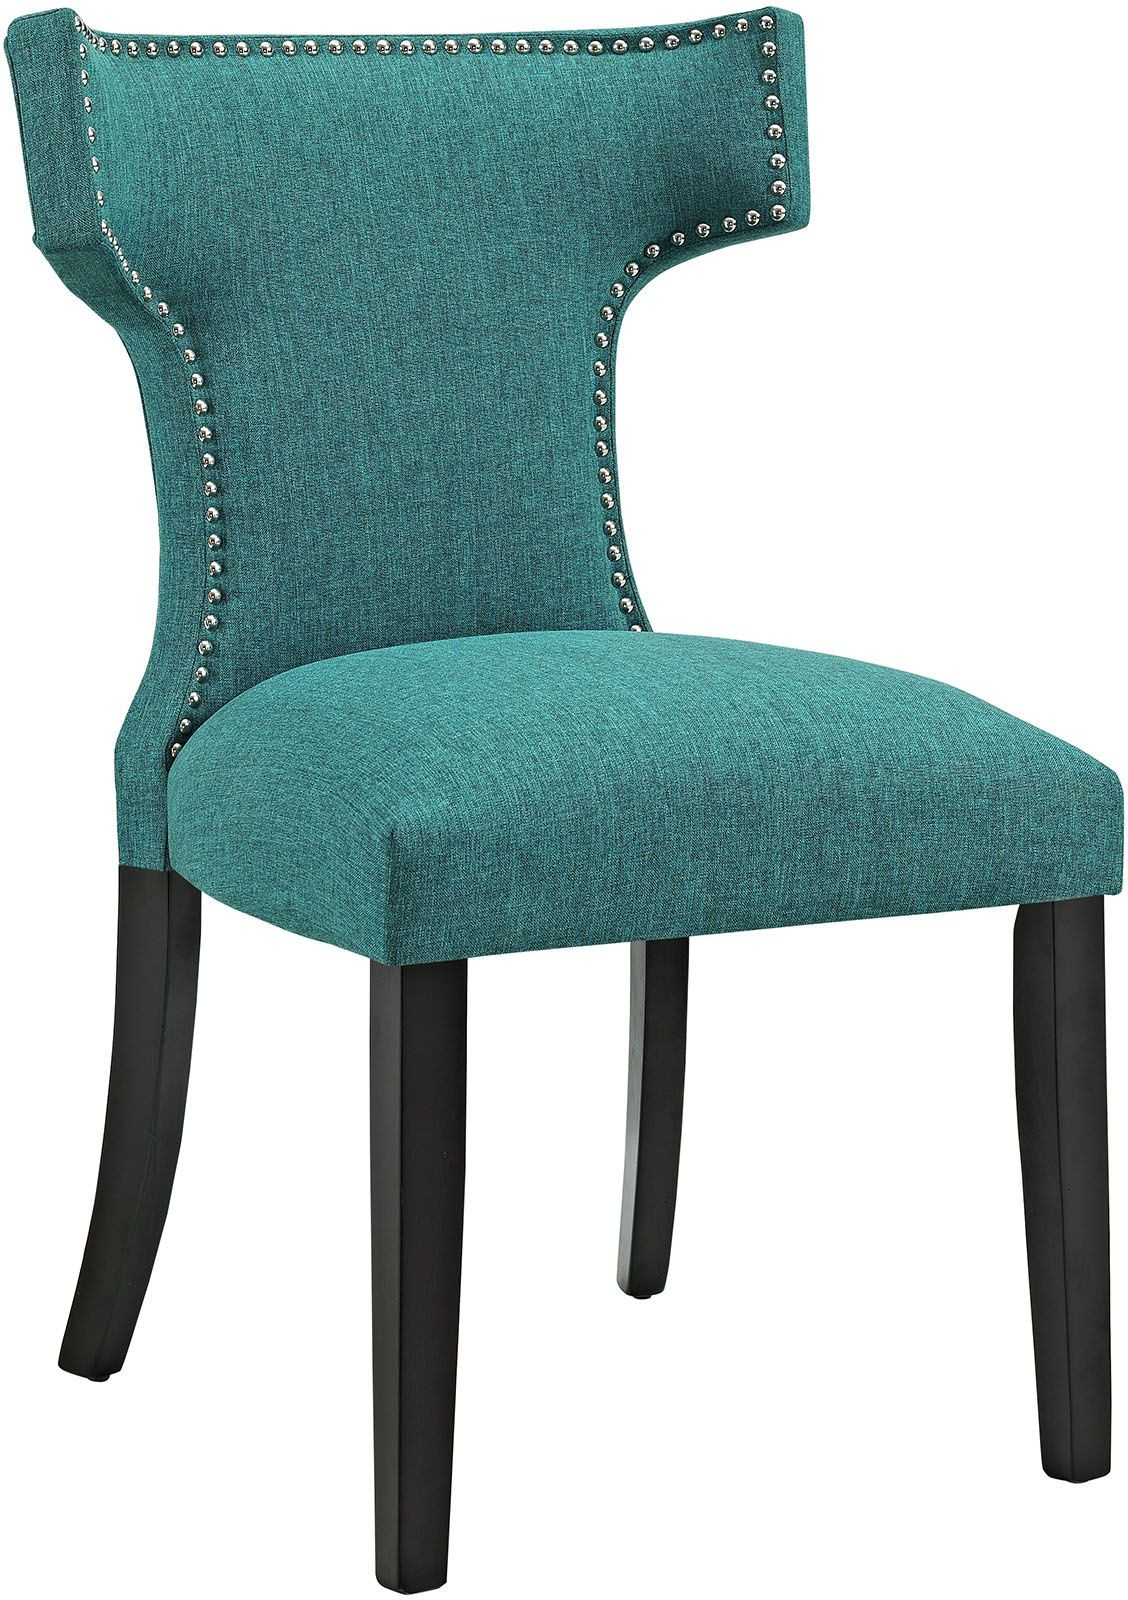 teal dining chairs chair massager with heat curve upholstered eei 2221 tea